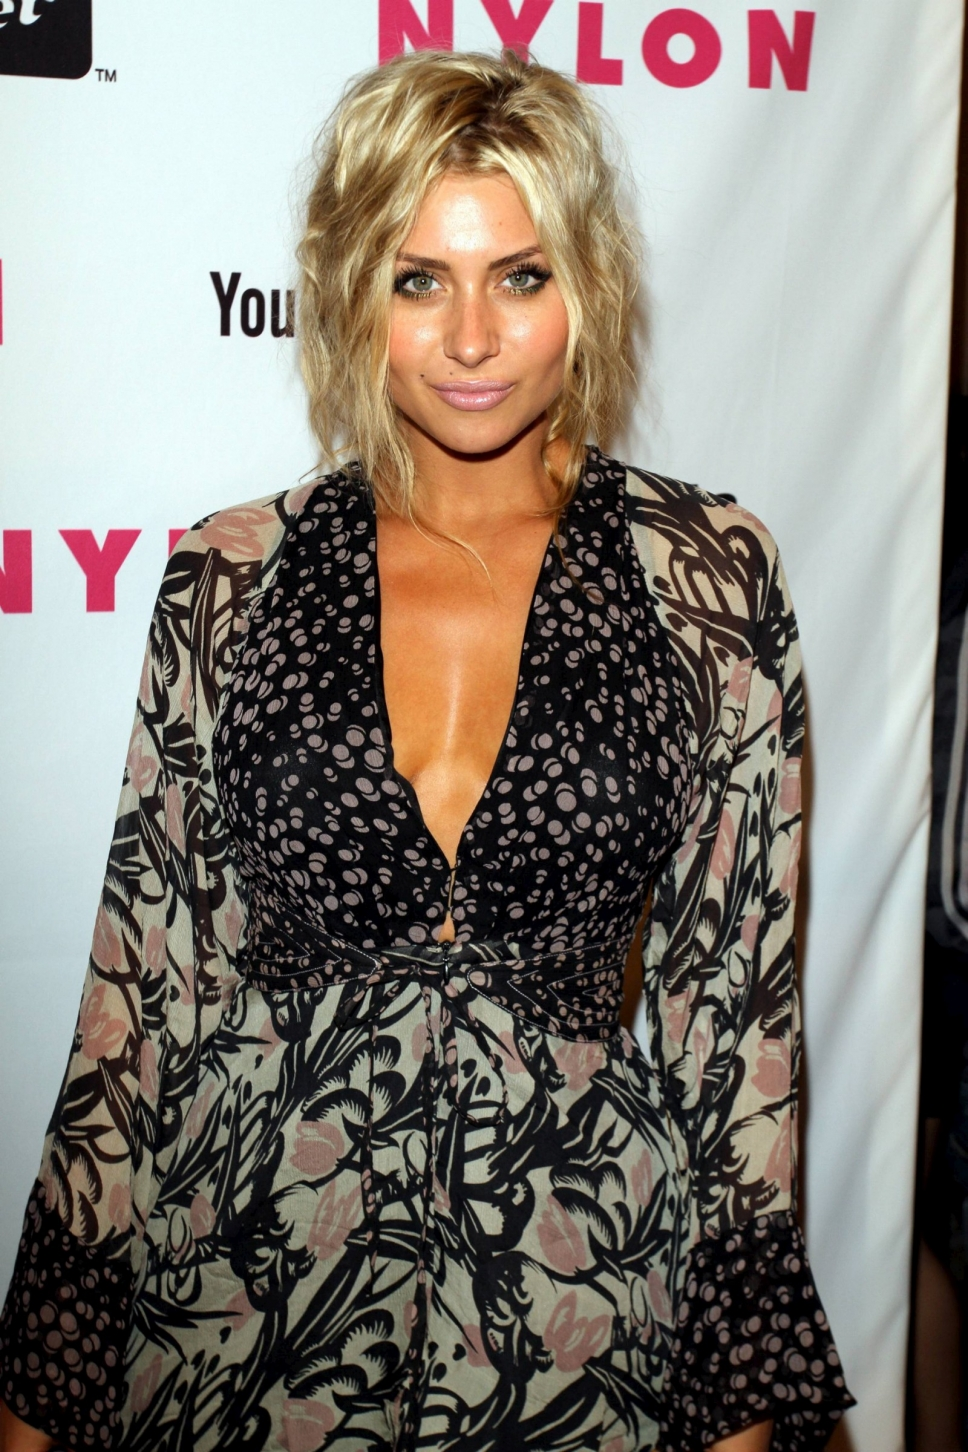 Aly Michalka Naked Pictures aly michalka nude - 2 pictures: rating 8.55/10